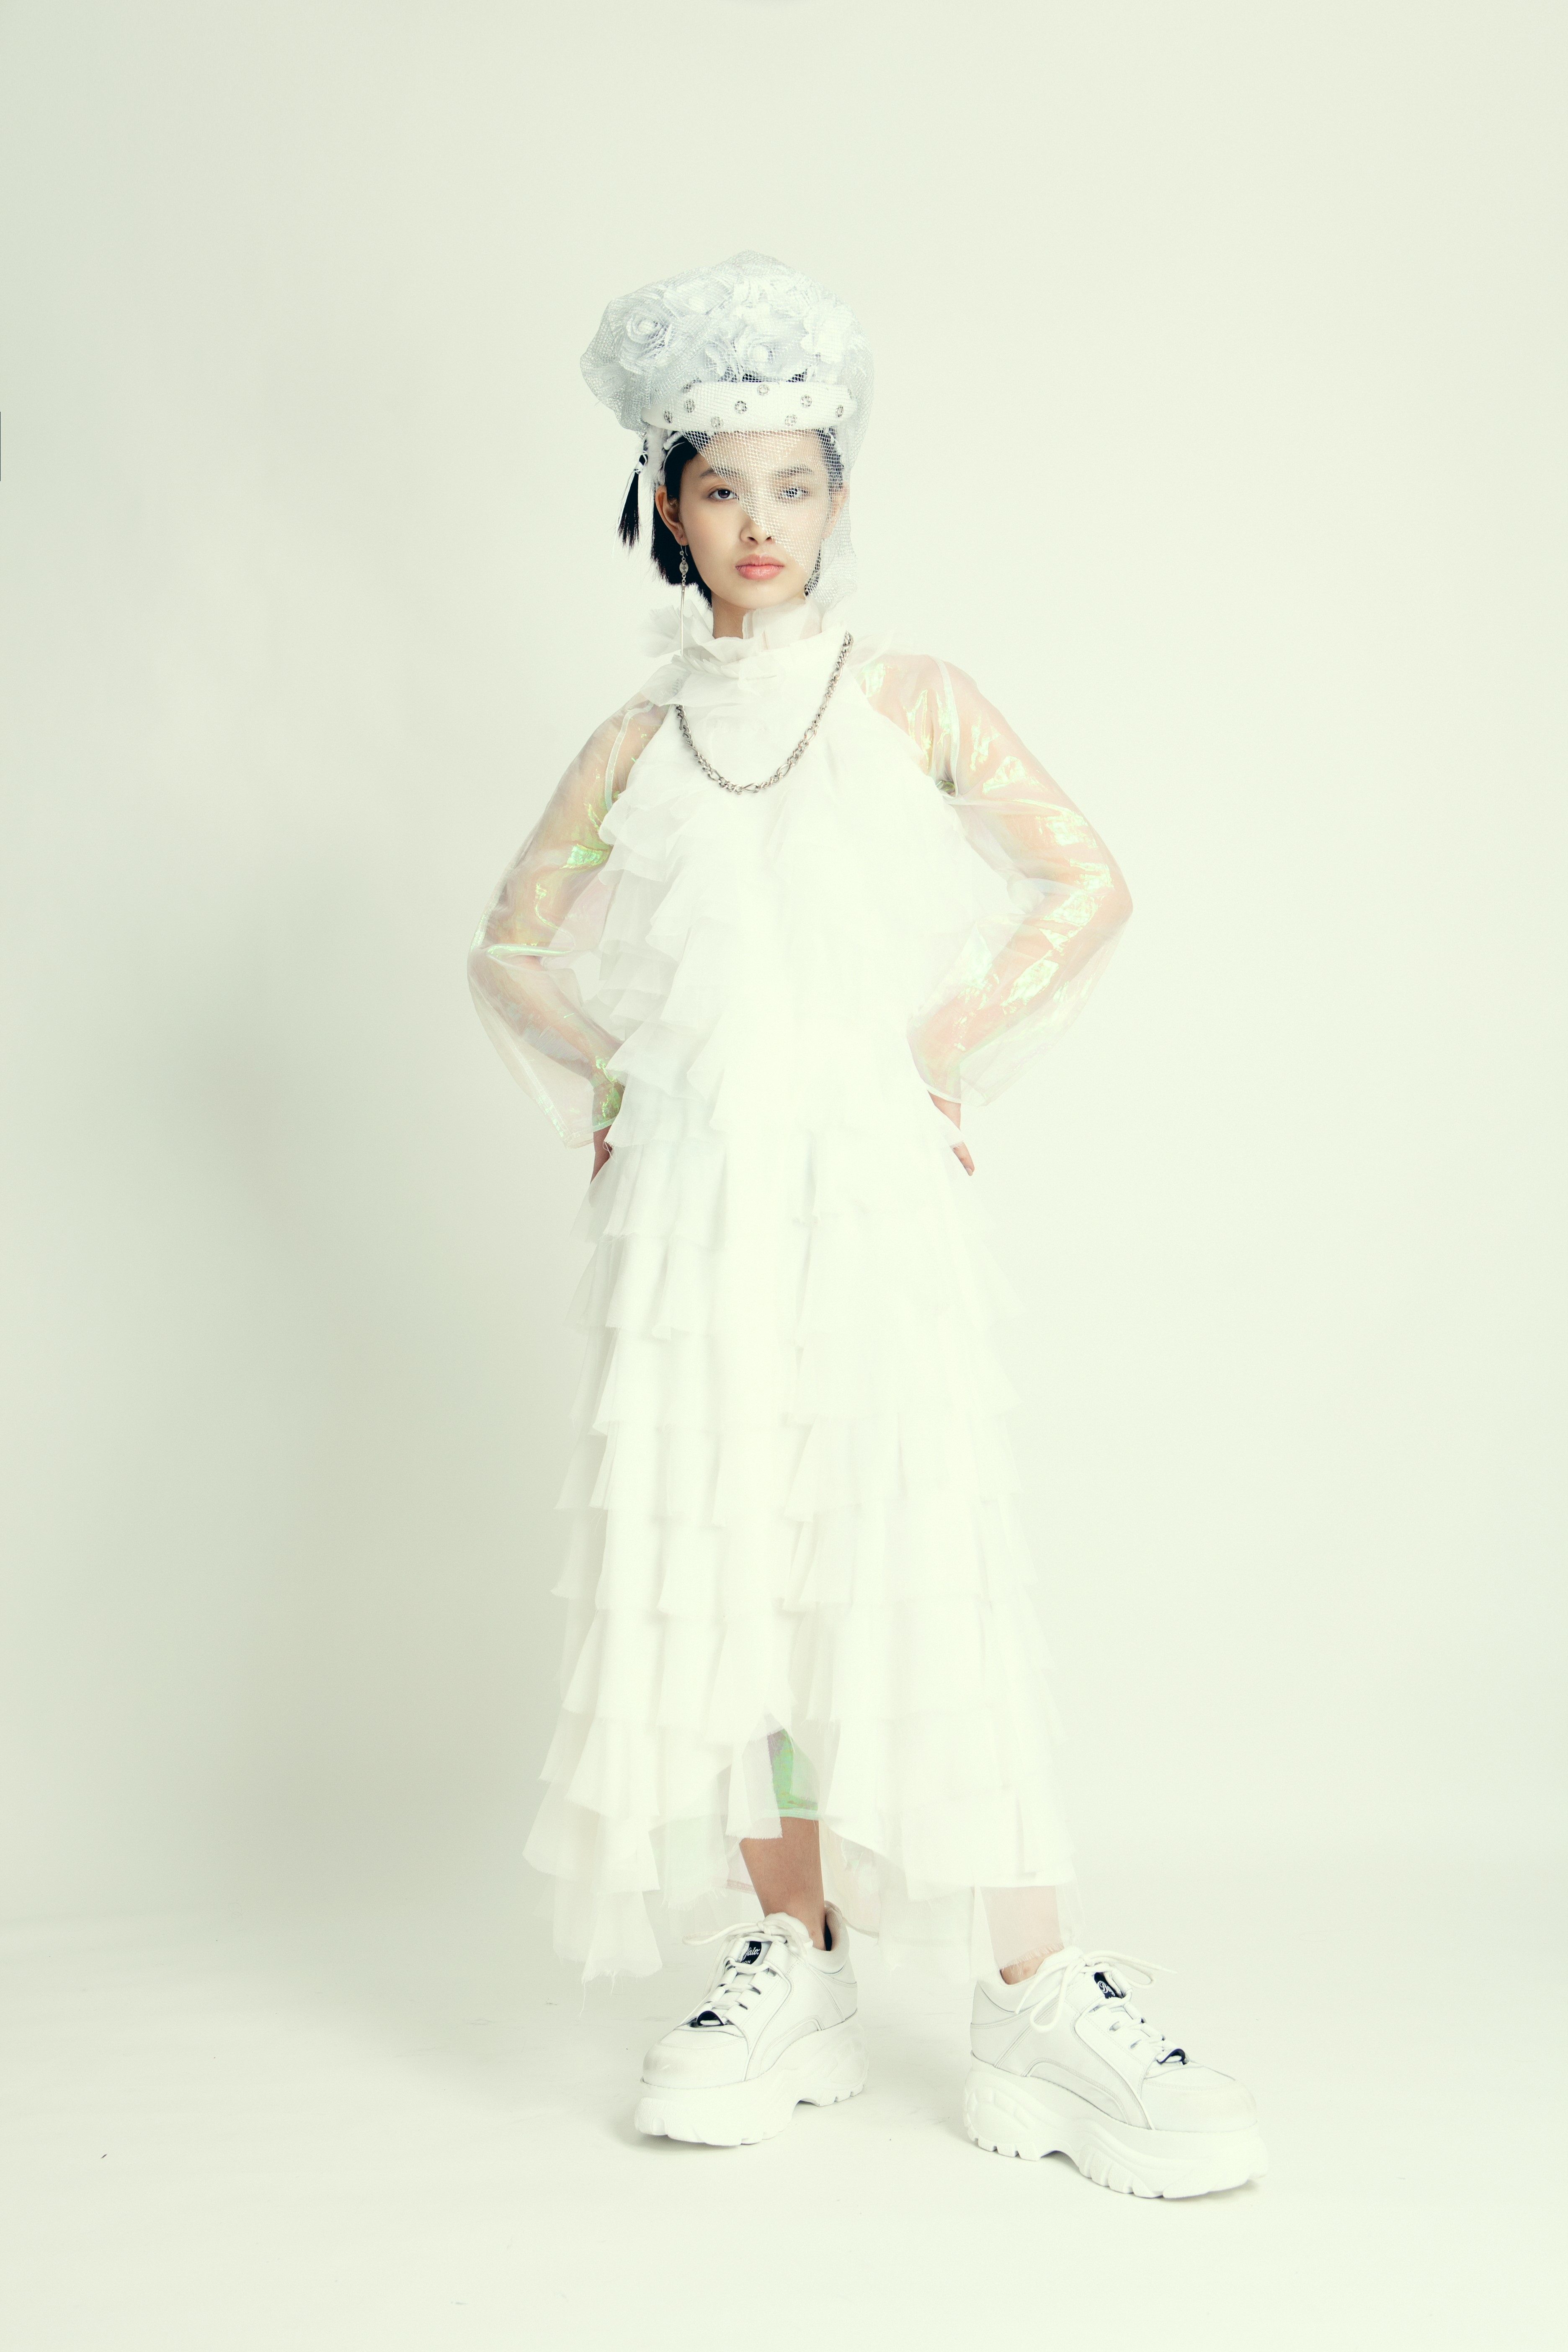 White headpiece with silver embellishment : Seyit Ares  White tiered chiffon dress : Chaussettes Orphelines Organza iridescent long dress : Noémie Devime  White sneakers : Buffalo  Silver chain : stylist own